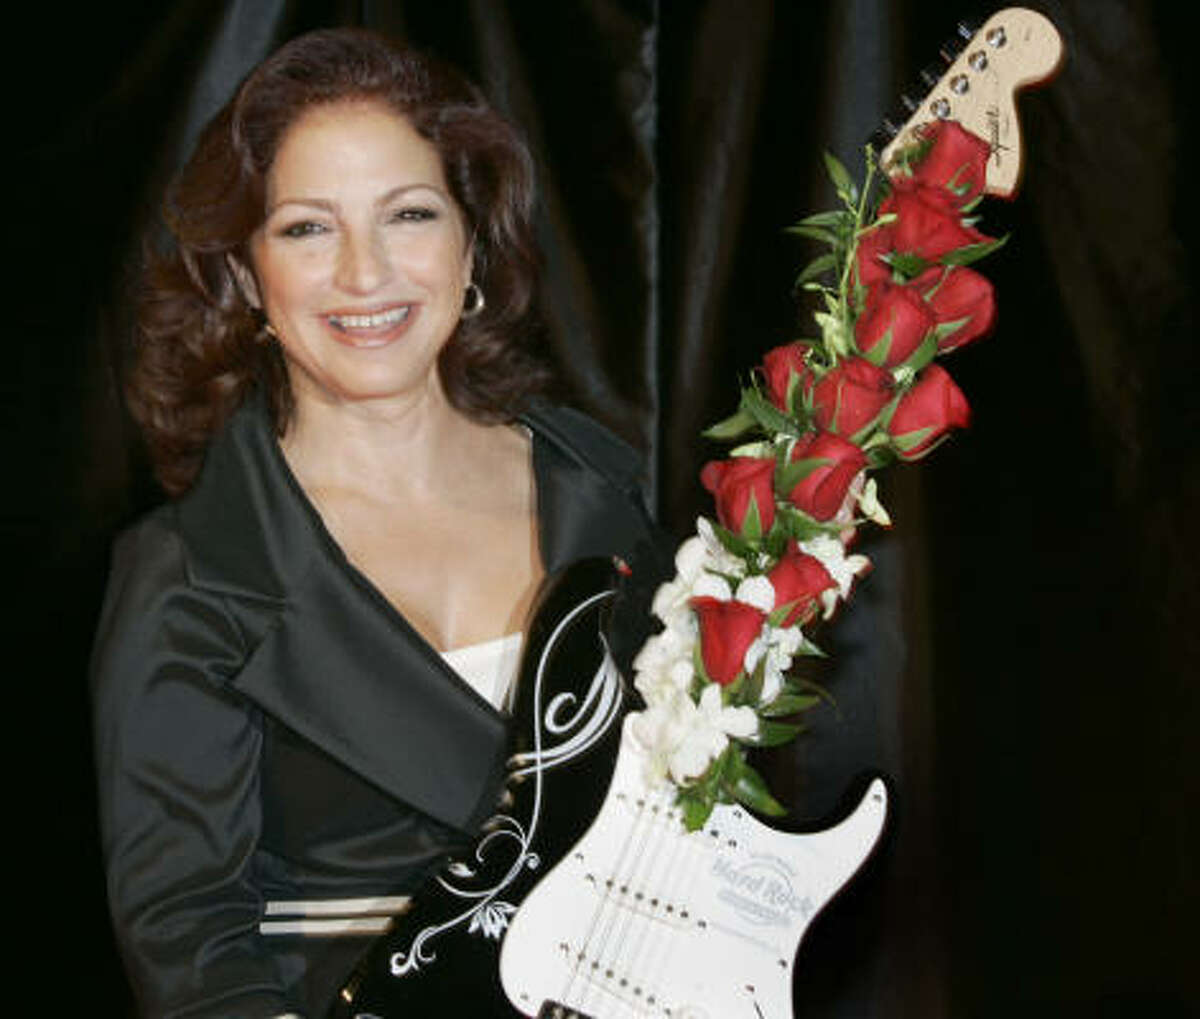 The Latin Recording Academy has named Gloria Estefan its Person of the Year for 2008.